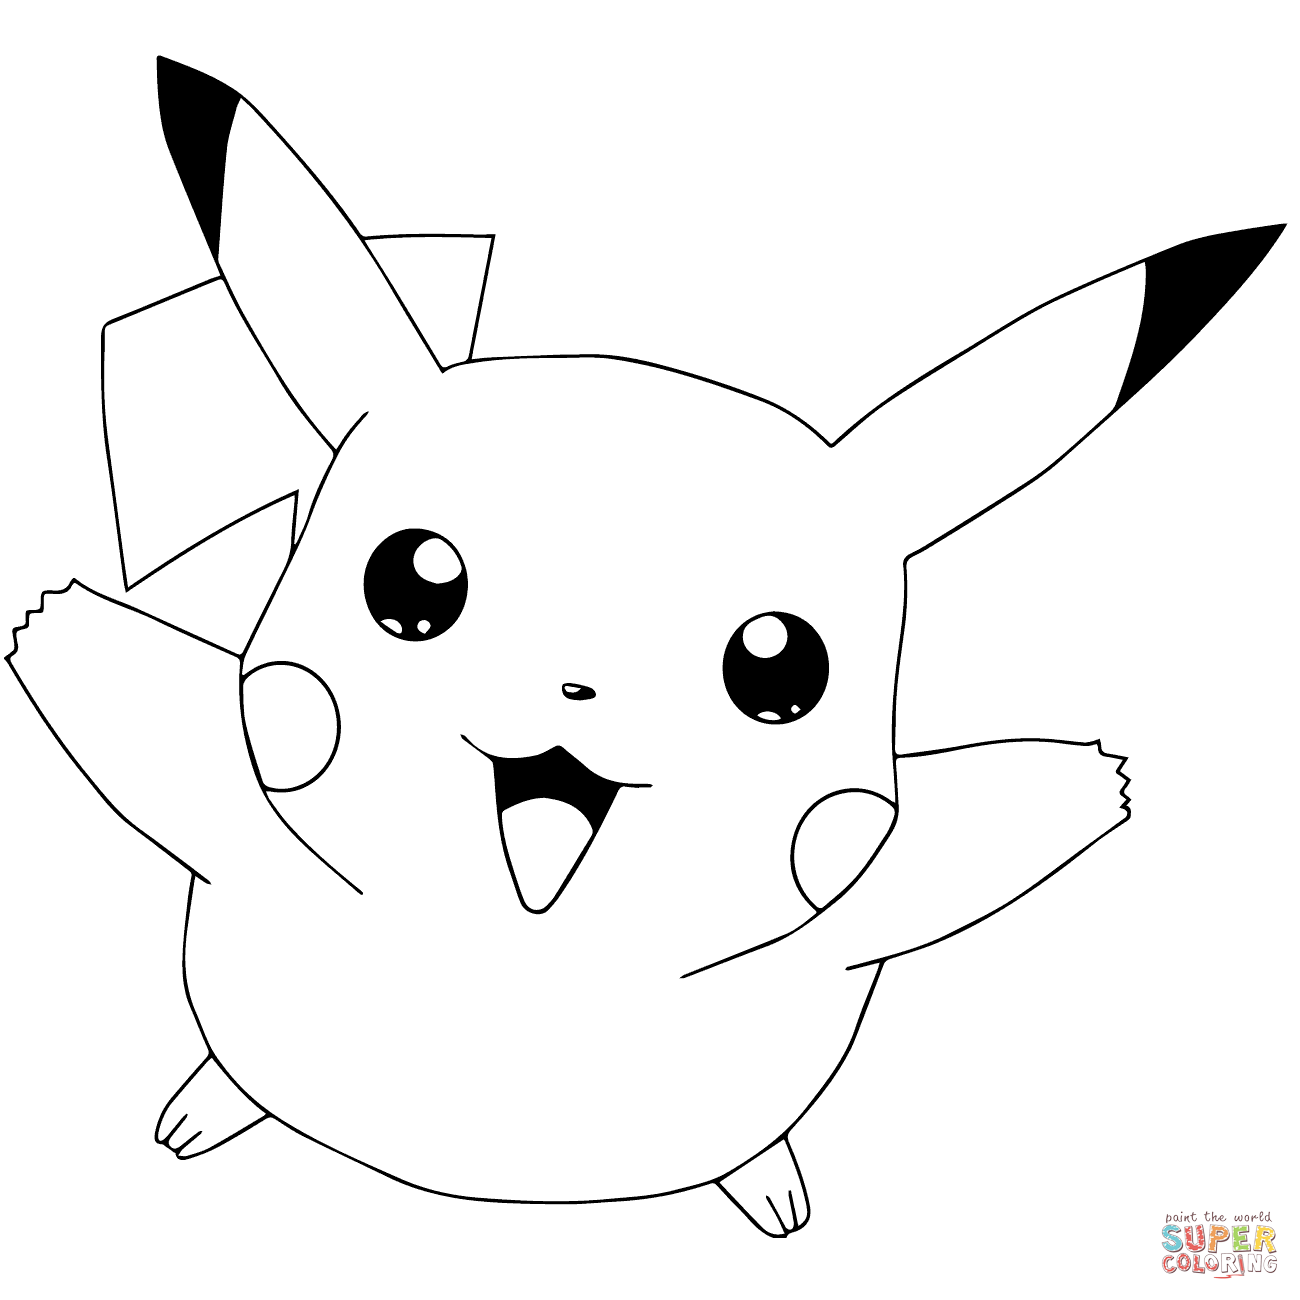 pikachu face coloring page pikachu drawing easy at getdrawings free download coloring page face pikachu